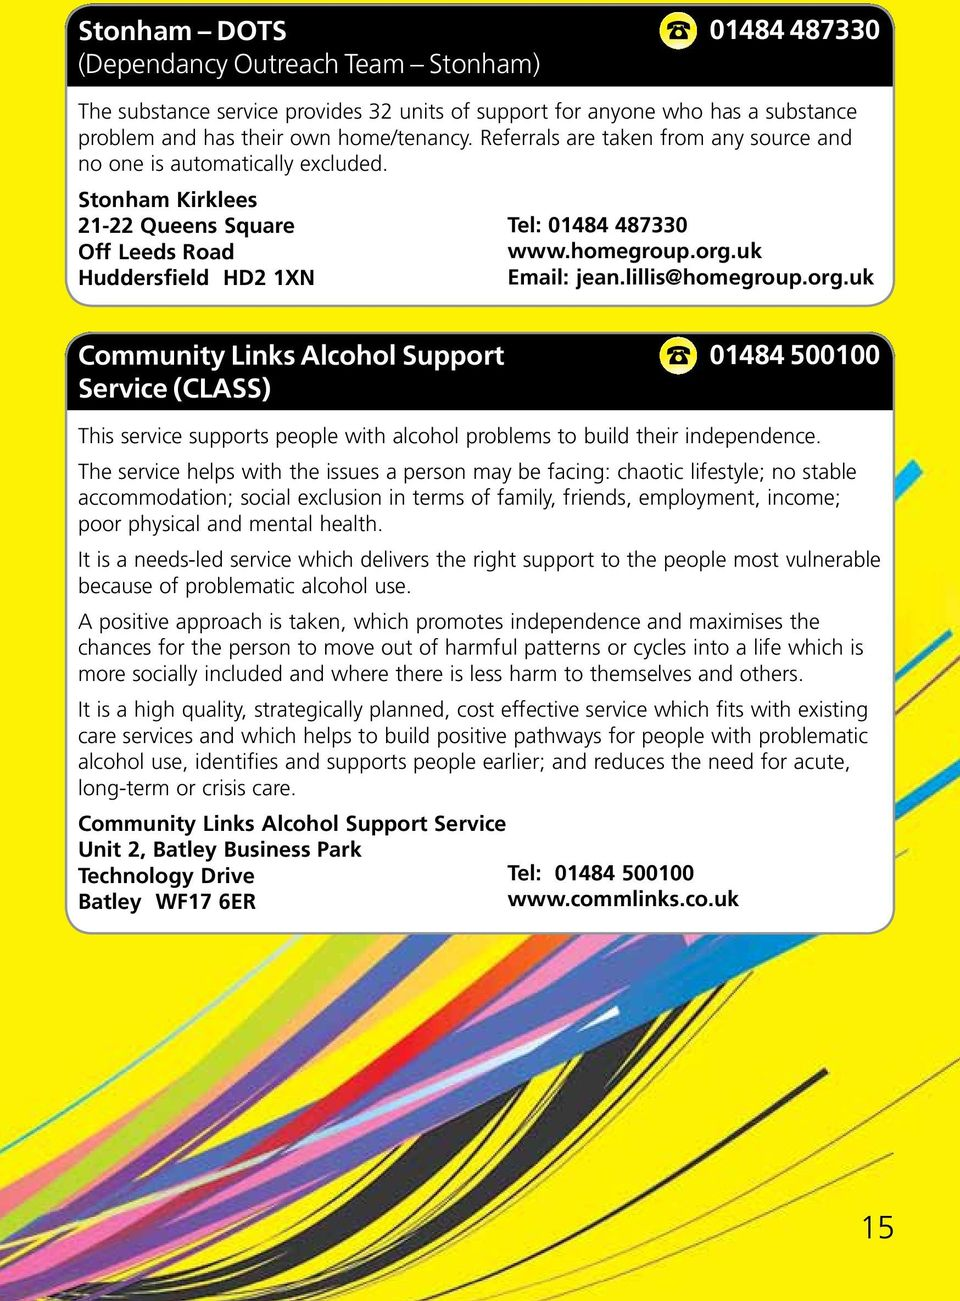 lillis@homegroup.org.uk Community Links Alcohol Support Service (CLASS) 01484 500100 This service supports people with alcohol problems to build their independence.